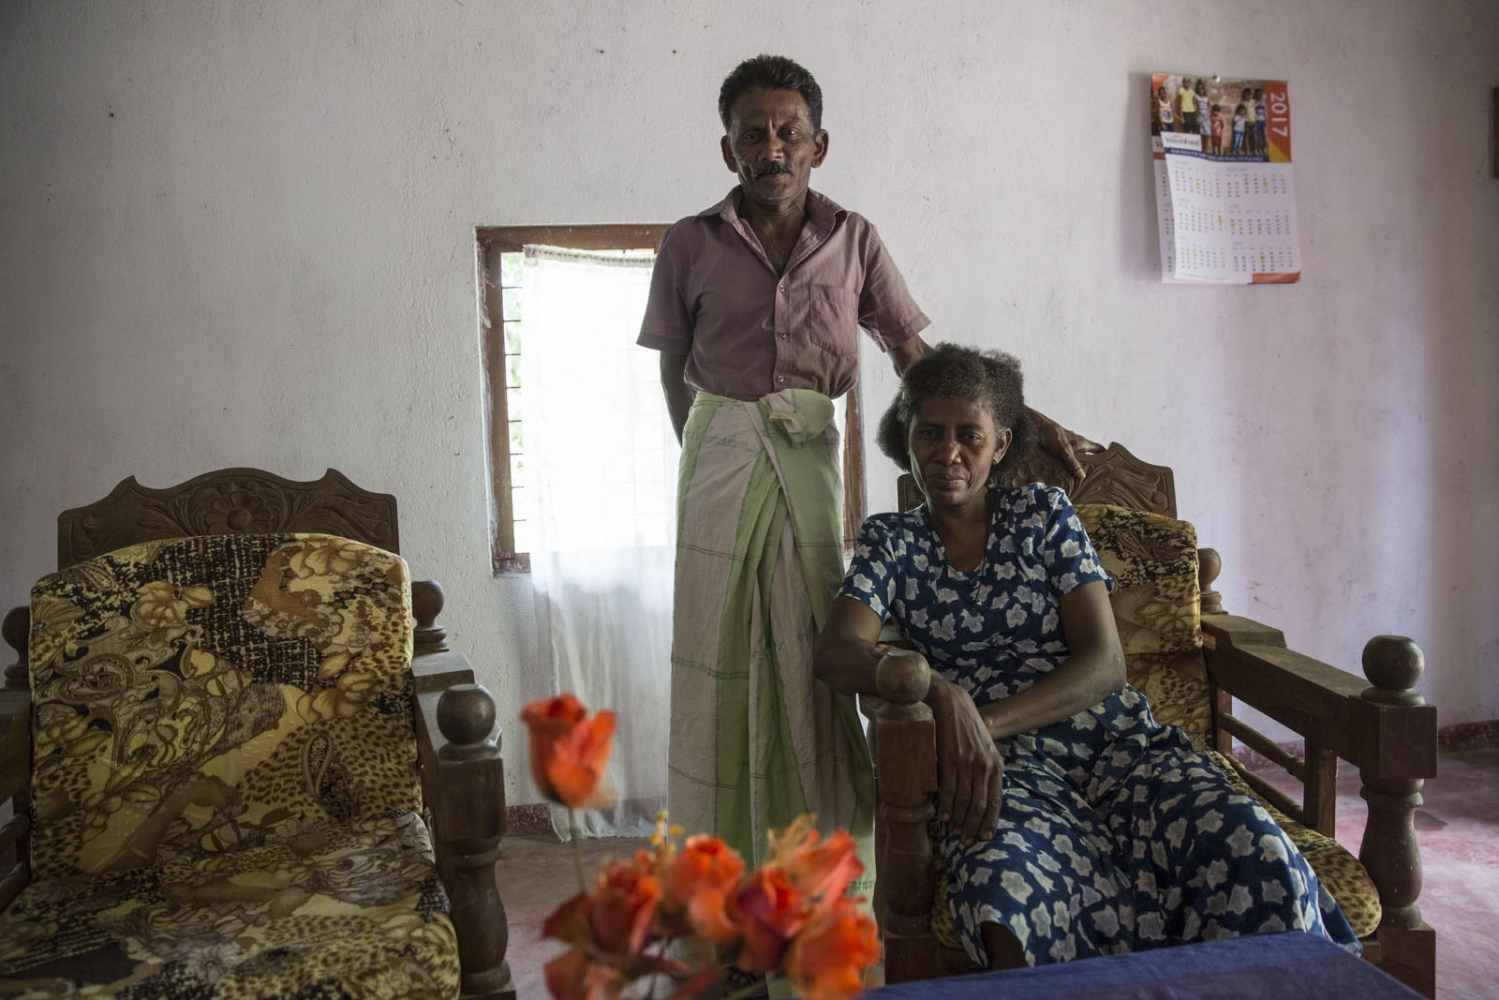 Maria Jasintha, 45, sits in her living room with her Sinhalese husband in Siriambadiya. He's a fisherman from the city of Negembo. Their son who works in Qatar as a construction worker is now classed as Sinhalese and as a result she is the last true Afro-Sri Lankan left in this household. Siriambadiya, Sri Lanka - January 2017